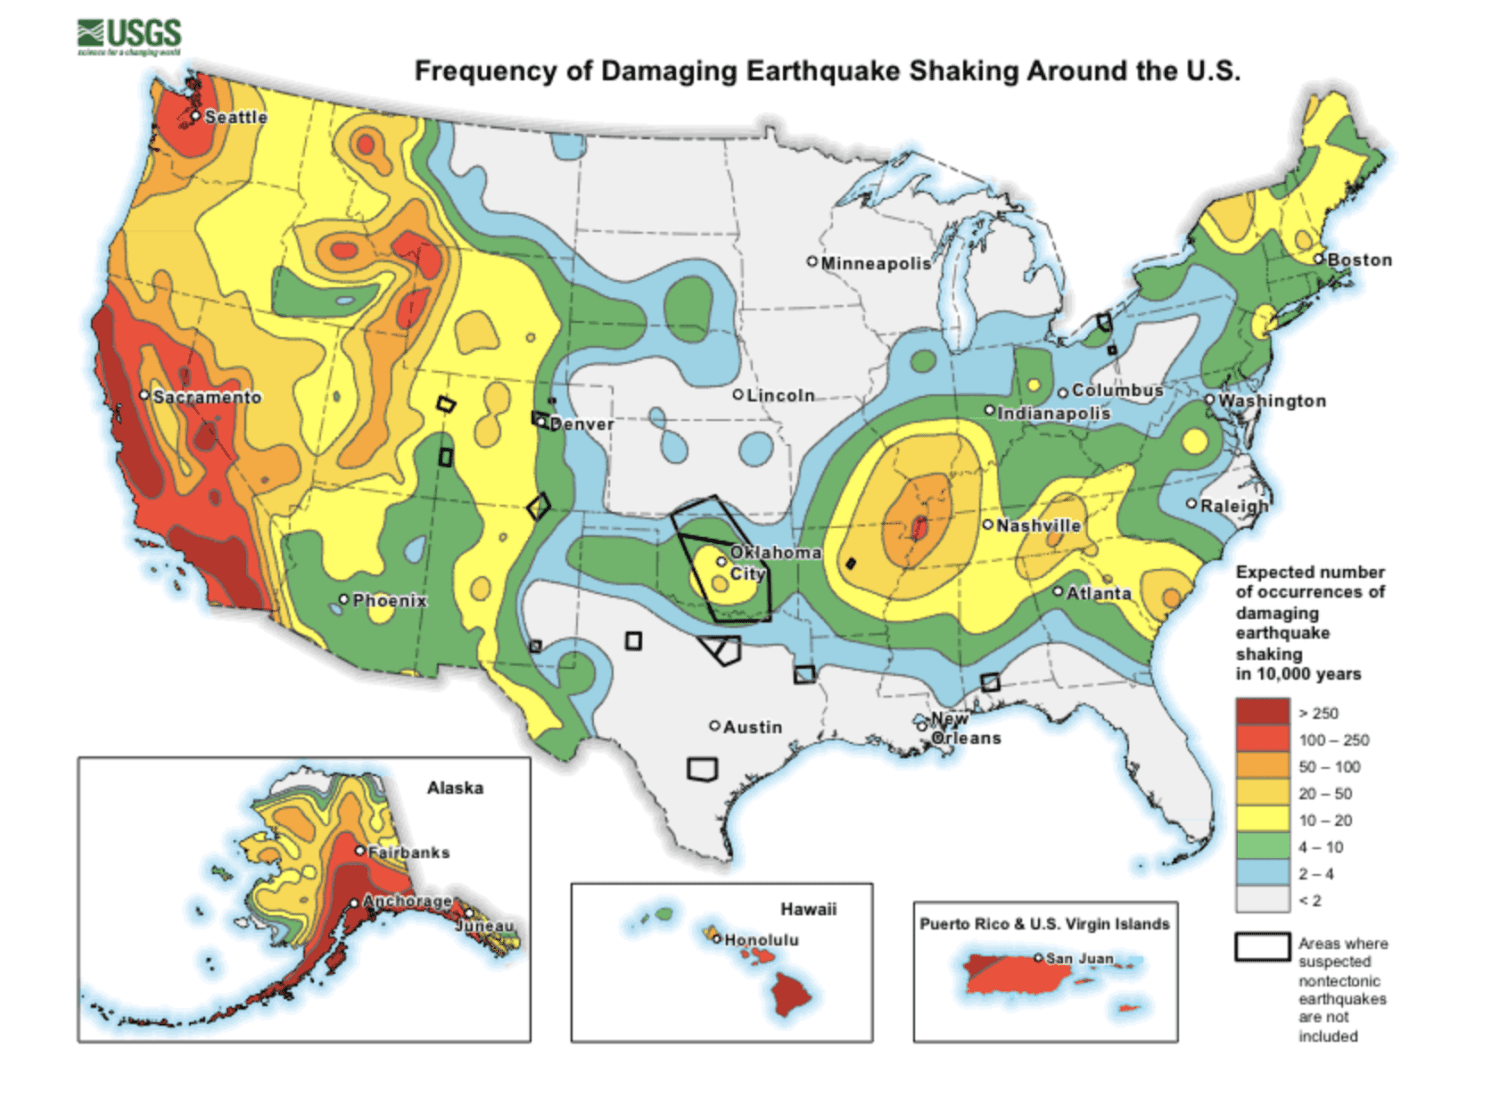 frequency of damaging earthquake shaking around the U.S.